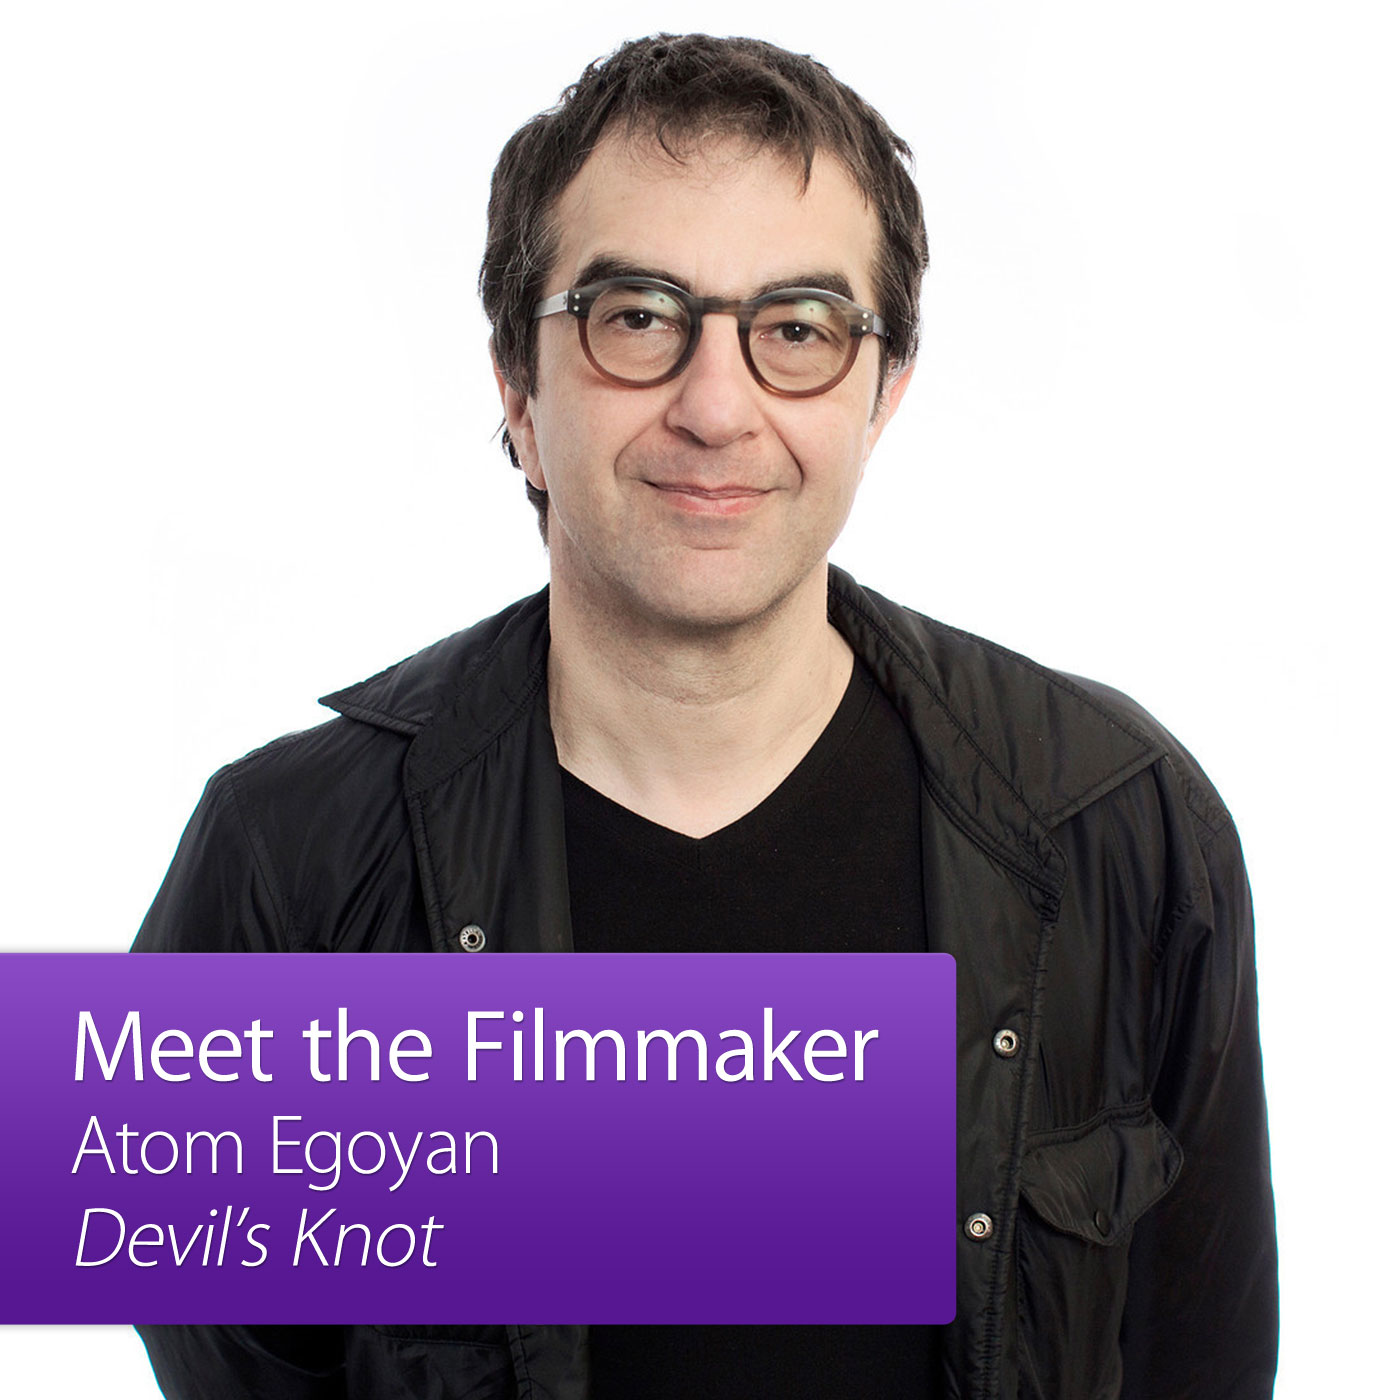 Atom Egoyan, Devil's Knot: Meet the Filmmaker